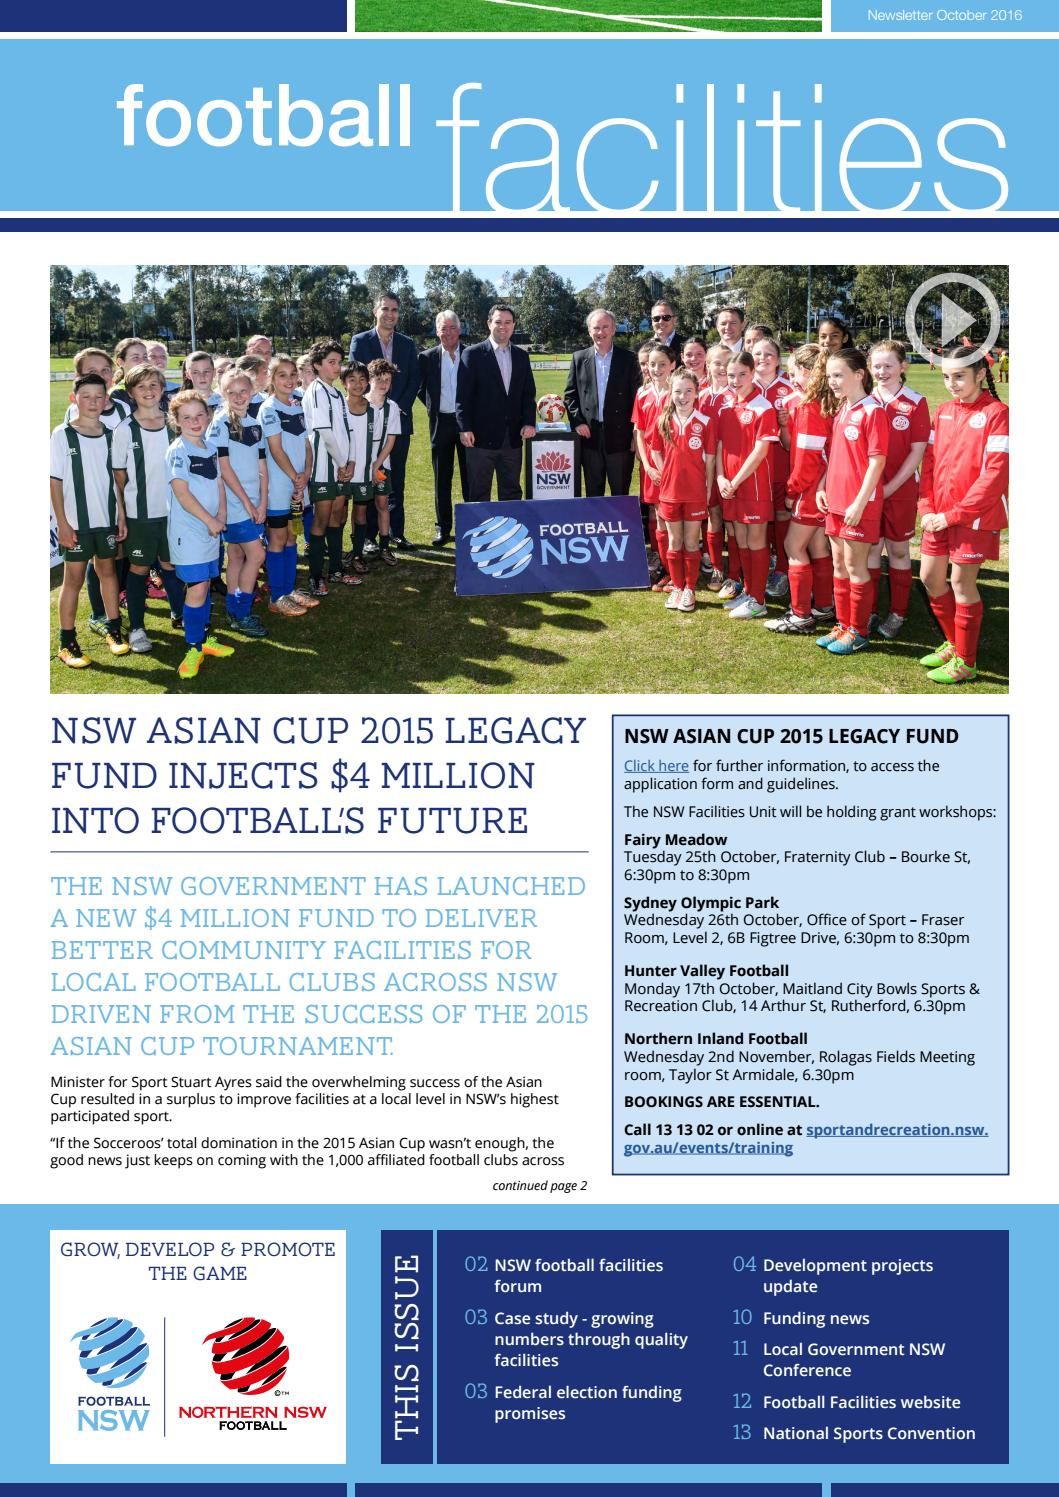 Facilities Newsletter 2 - October 2016 by Football NSW - issuu